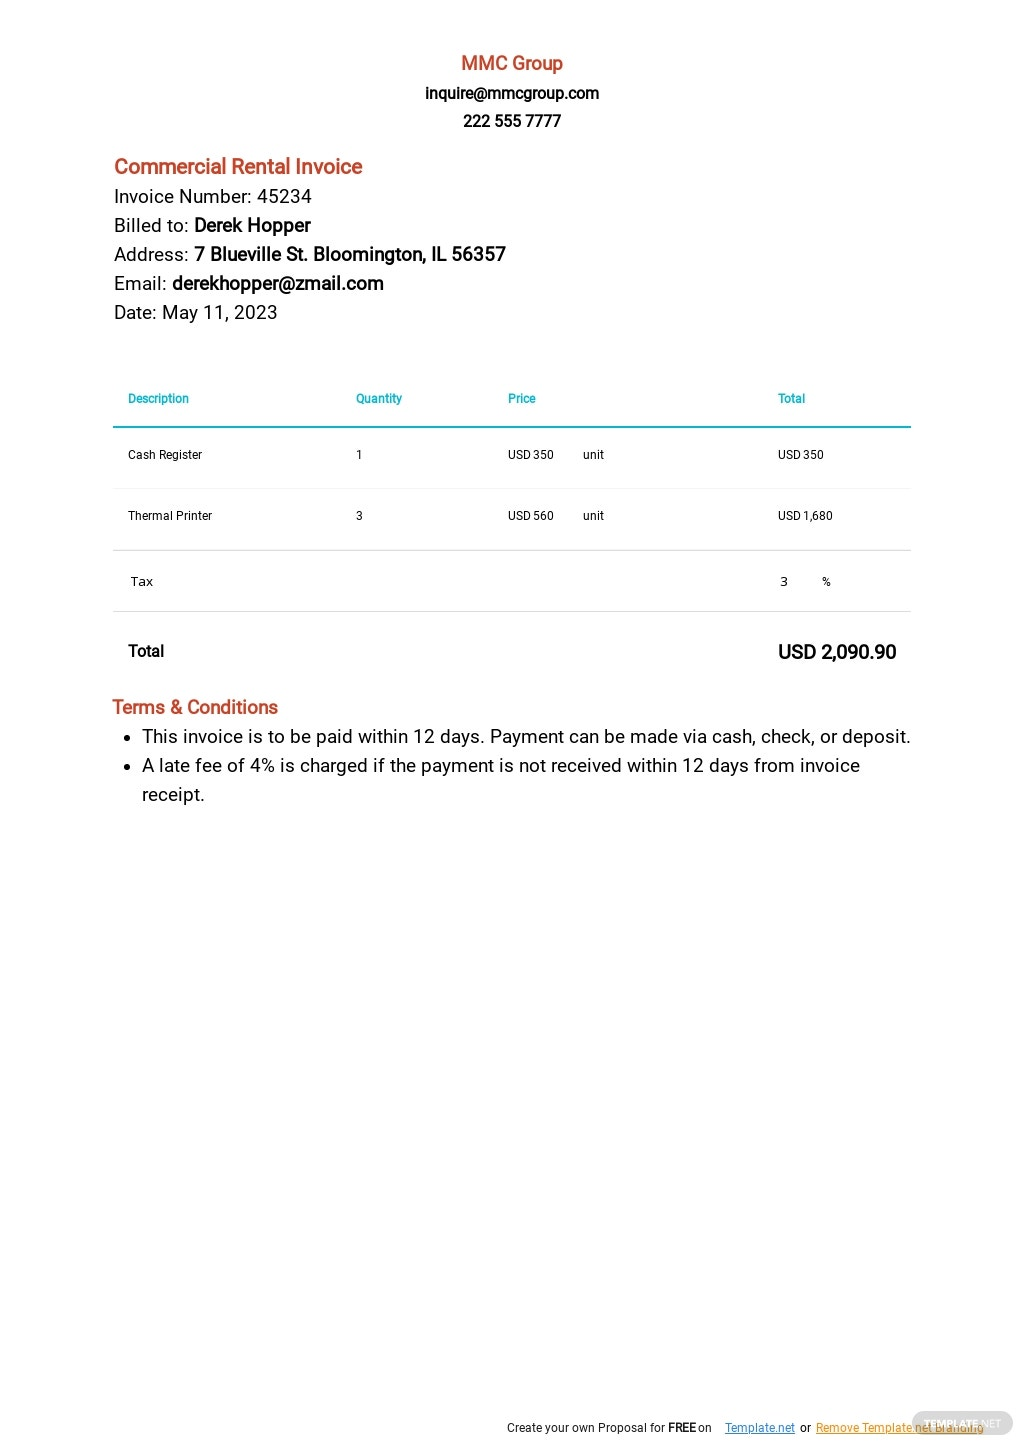 Commercial Rental Invoice Template.jpe